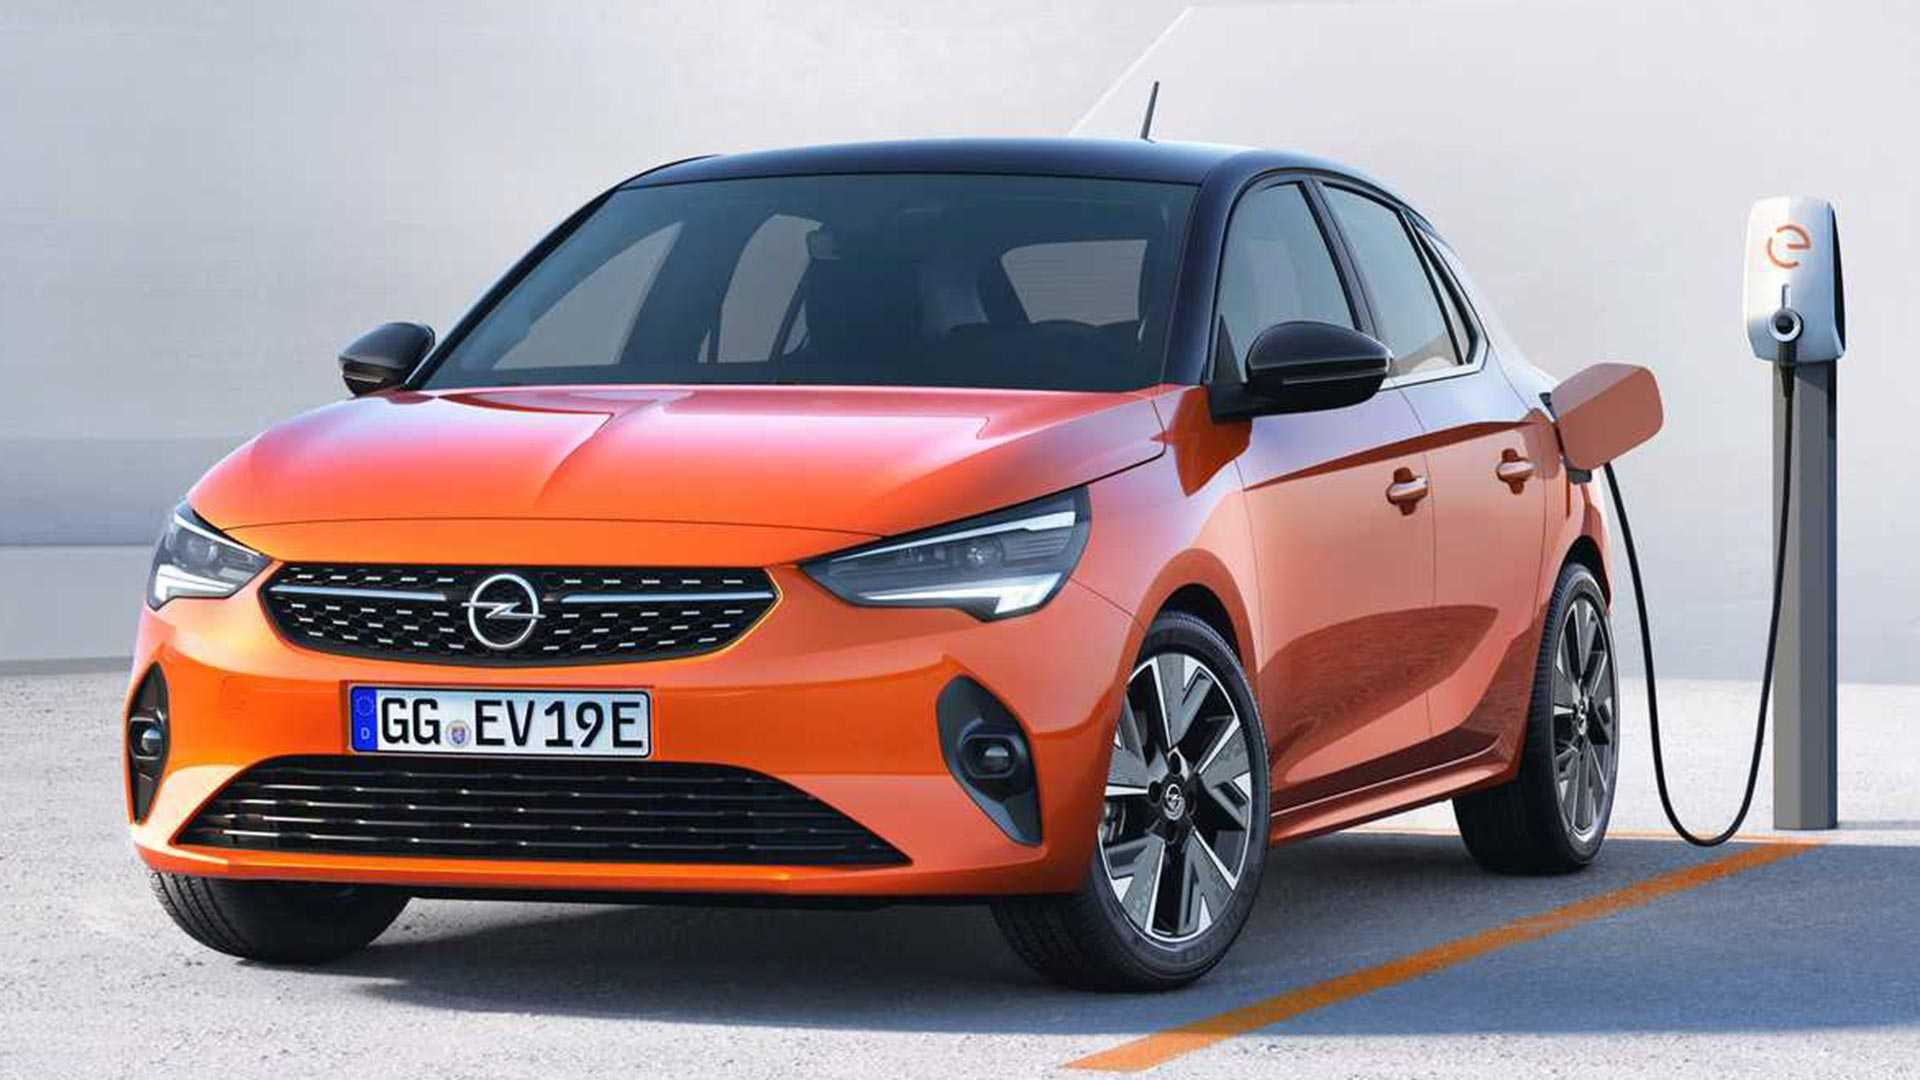 46 New Opel Corsa 2020 Interior Redesign And Review